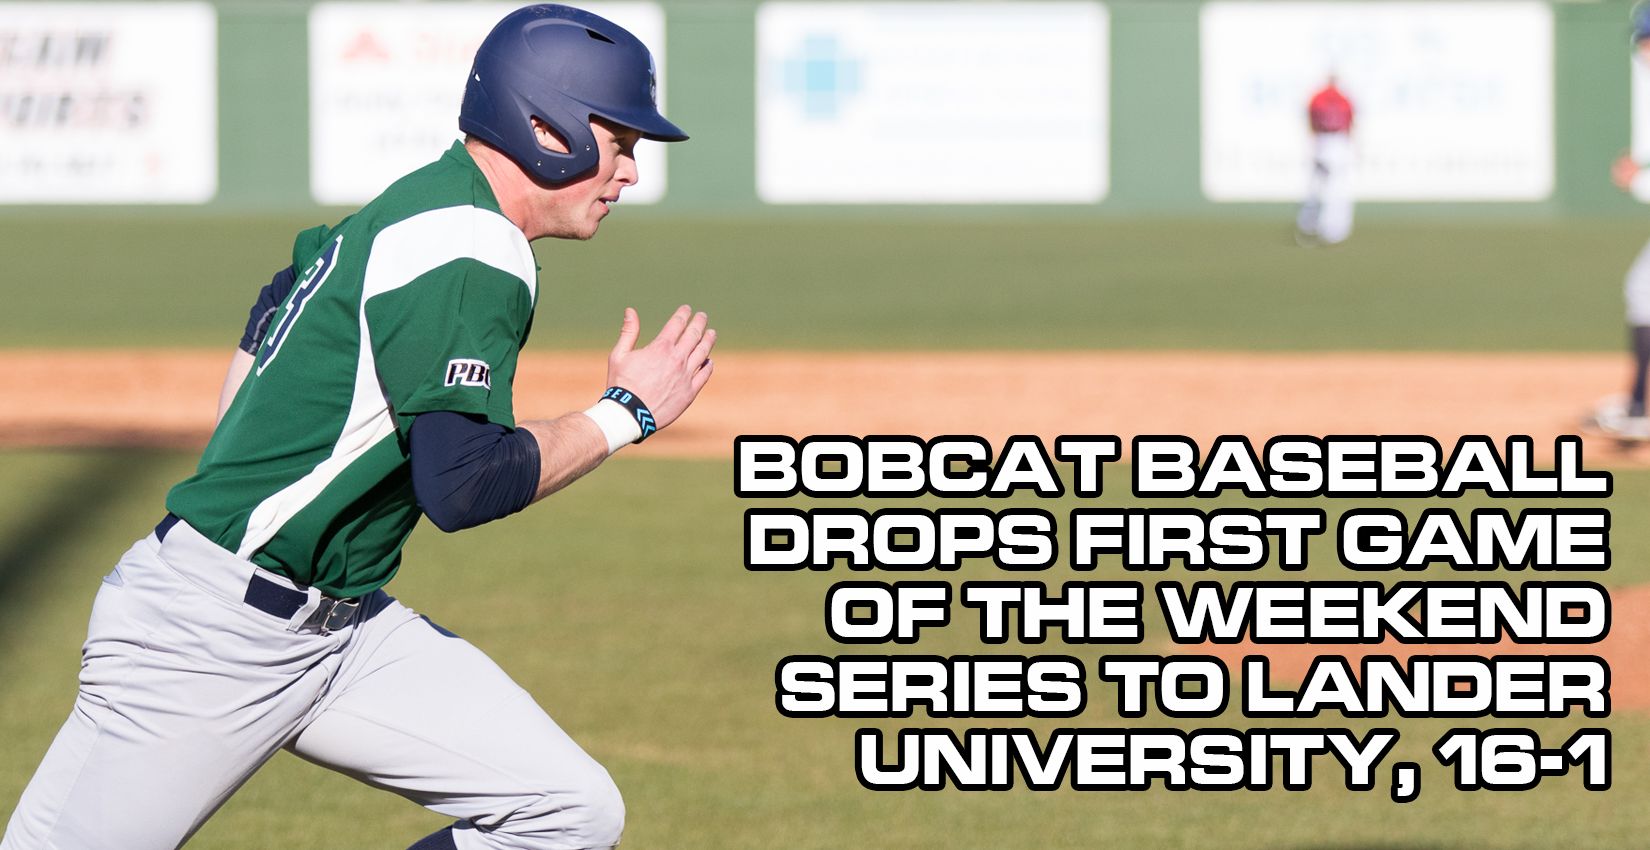 Bobcat Baseball Drops First Game of Weekend Series to #14 Lander, 16-1